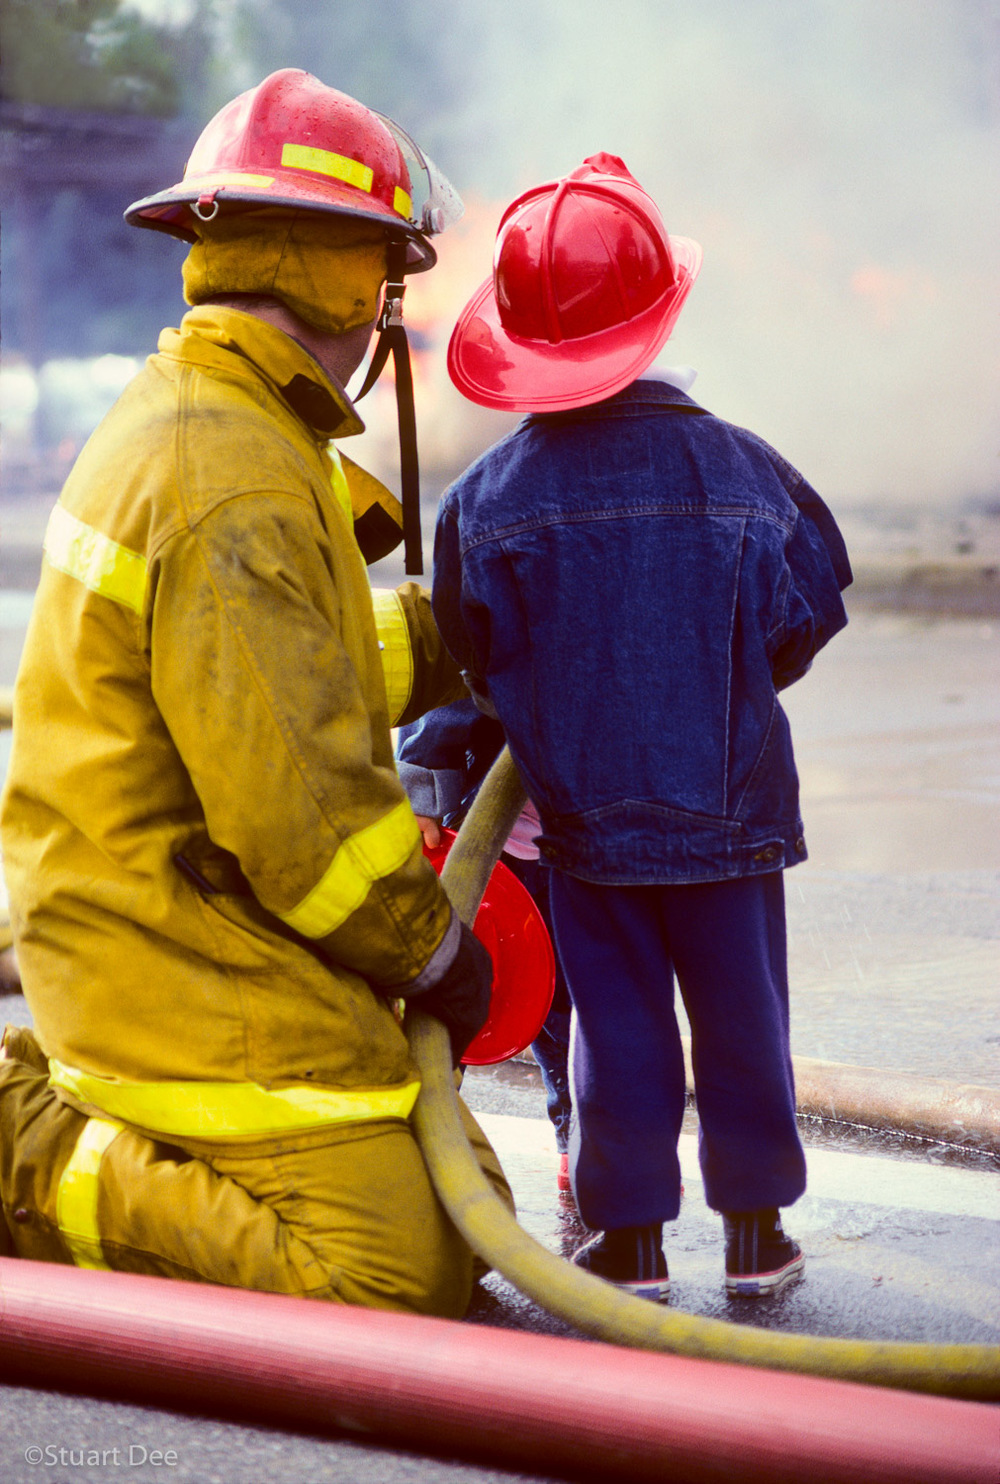 Young boy watching a fireman keep fire under control